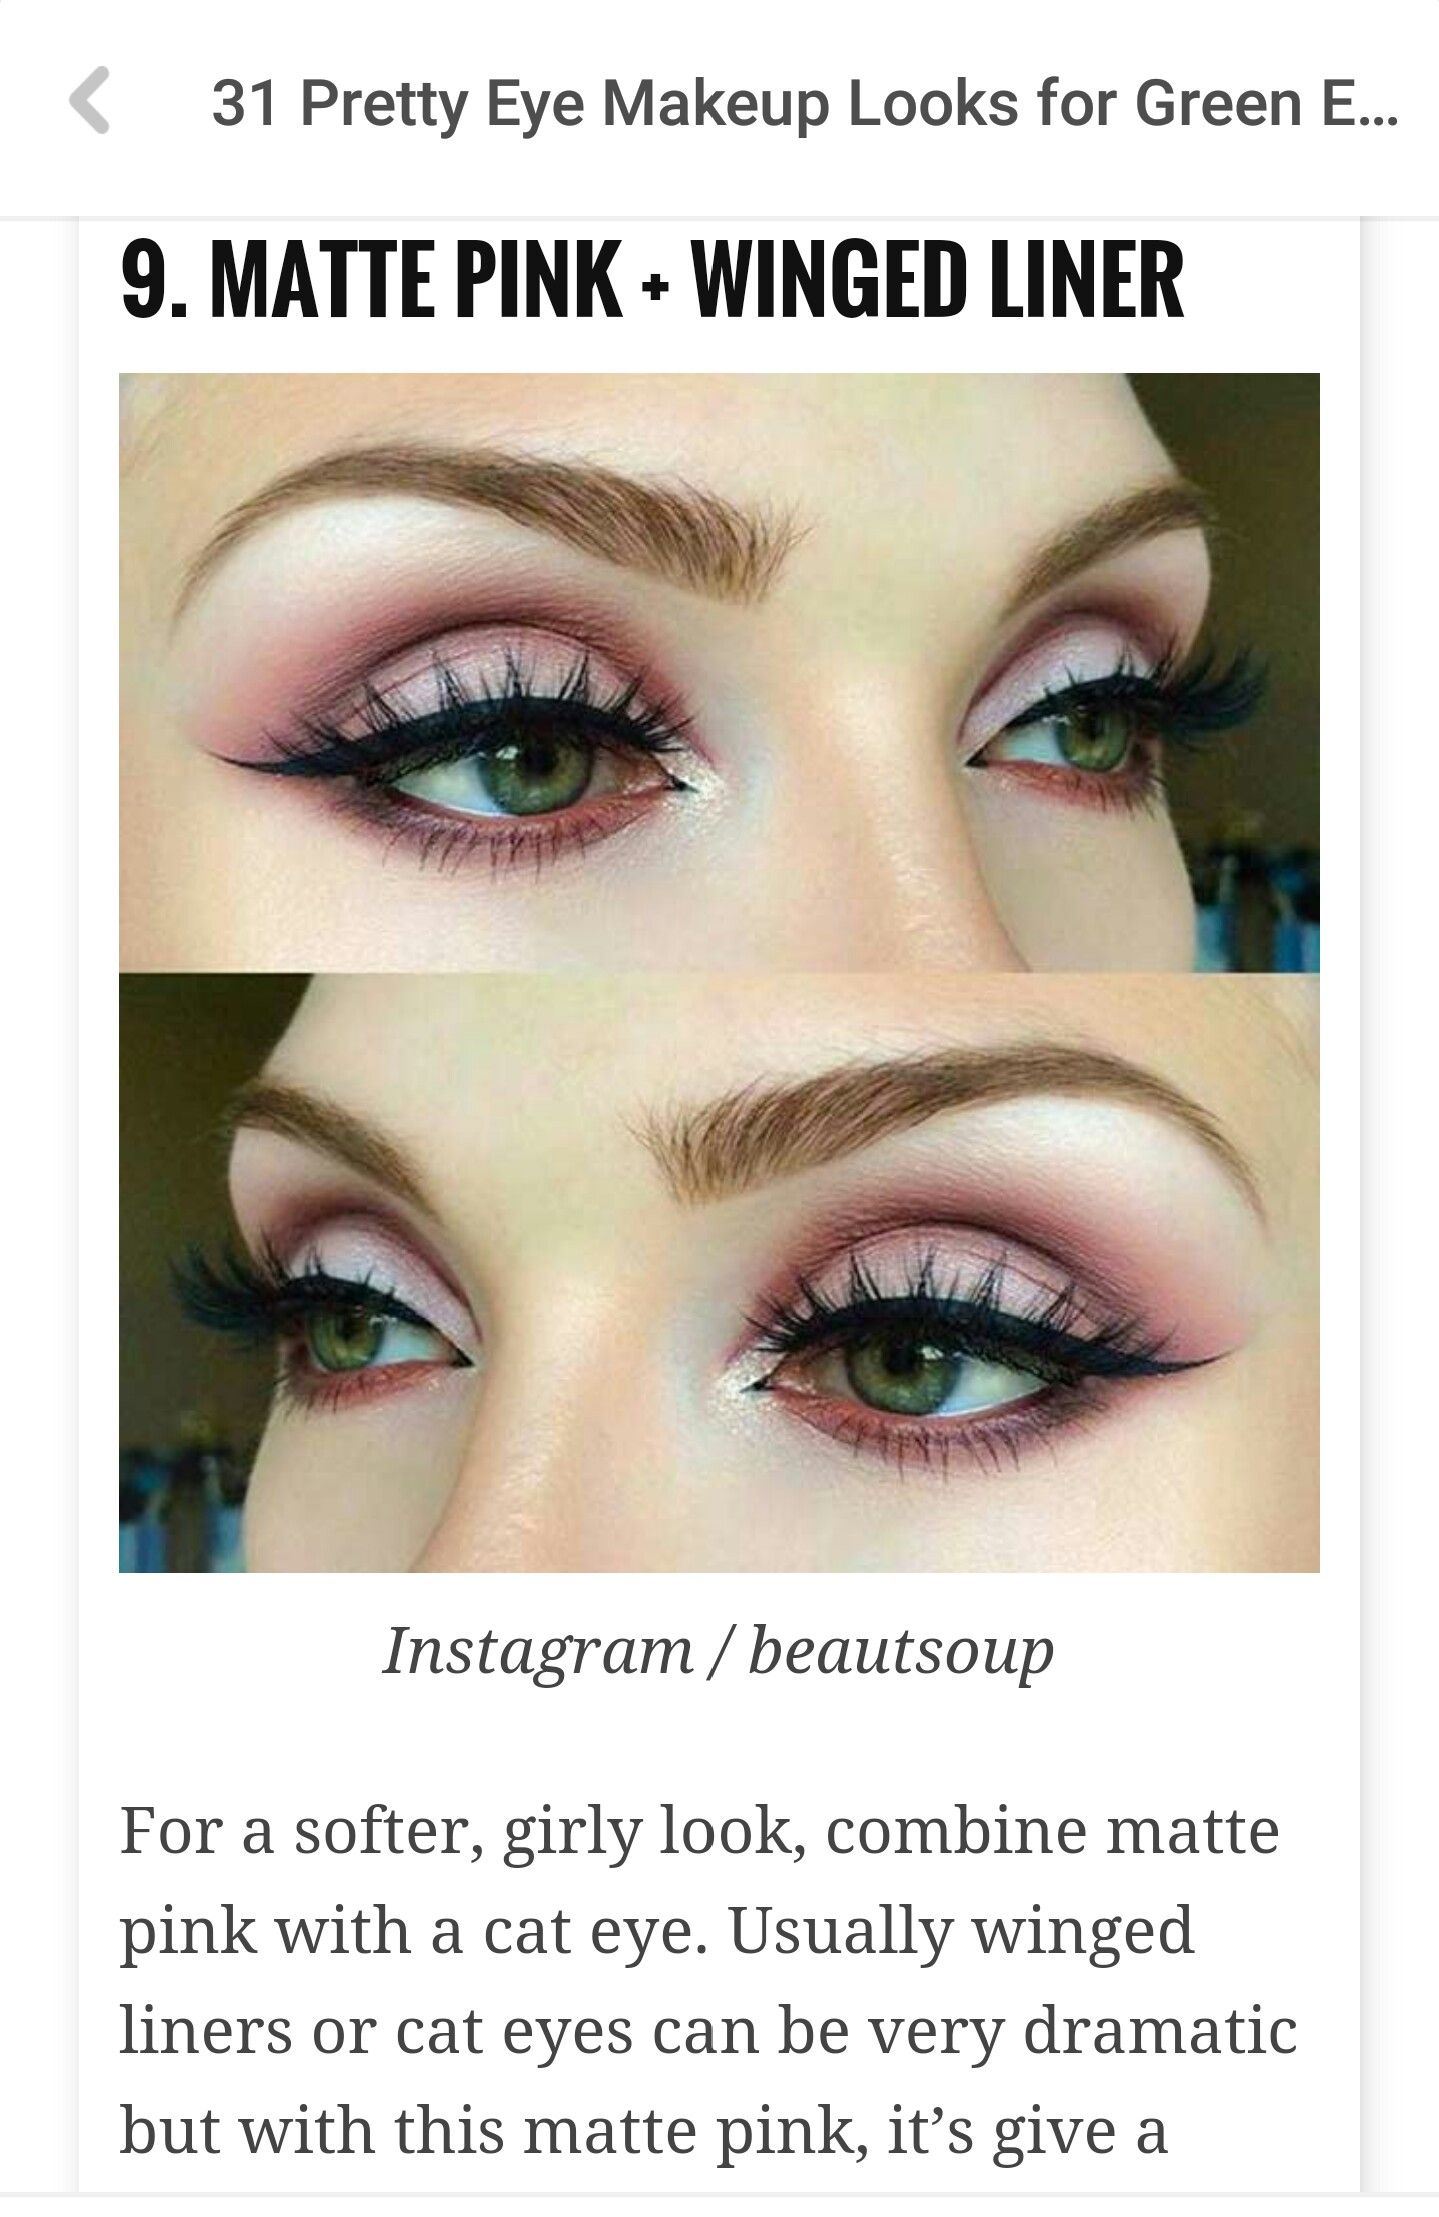 pin by brittany brooke on makeup | makeup looks for green